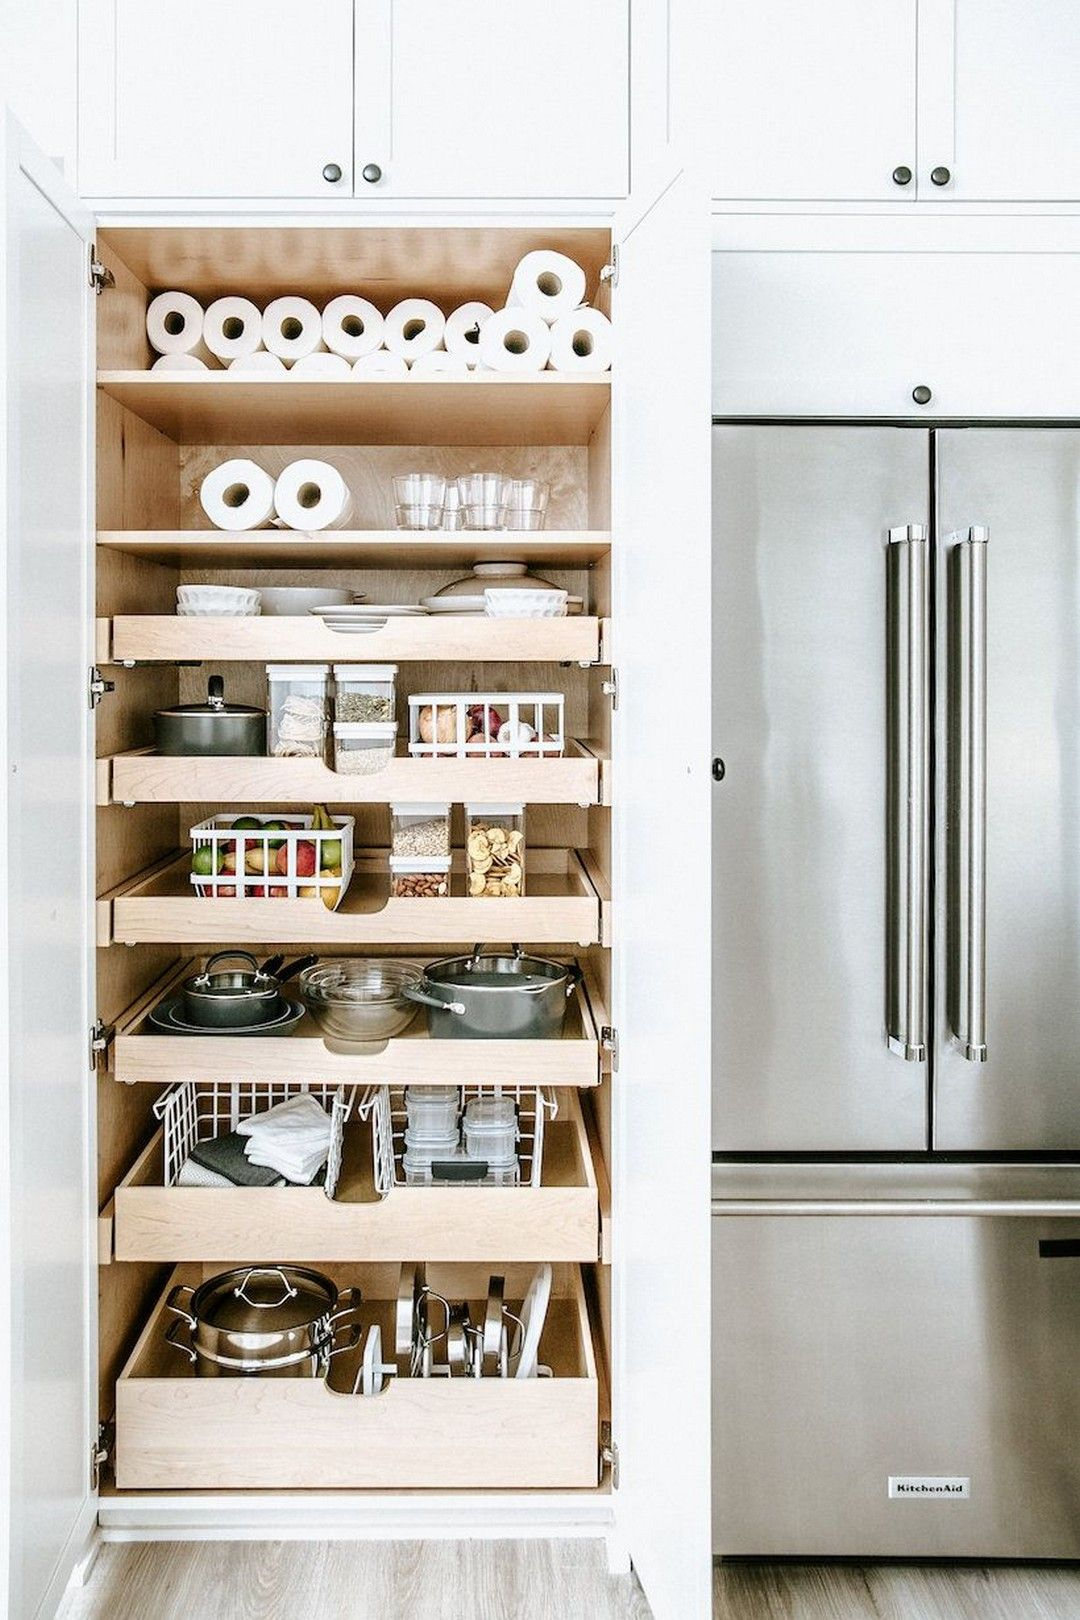 23 Kitchen Organizing Solutions That Actually Work